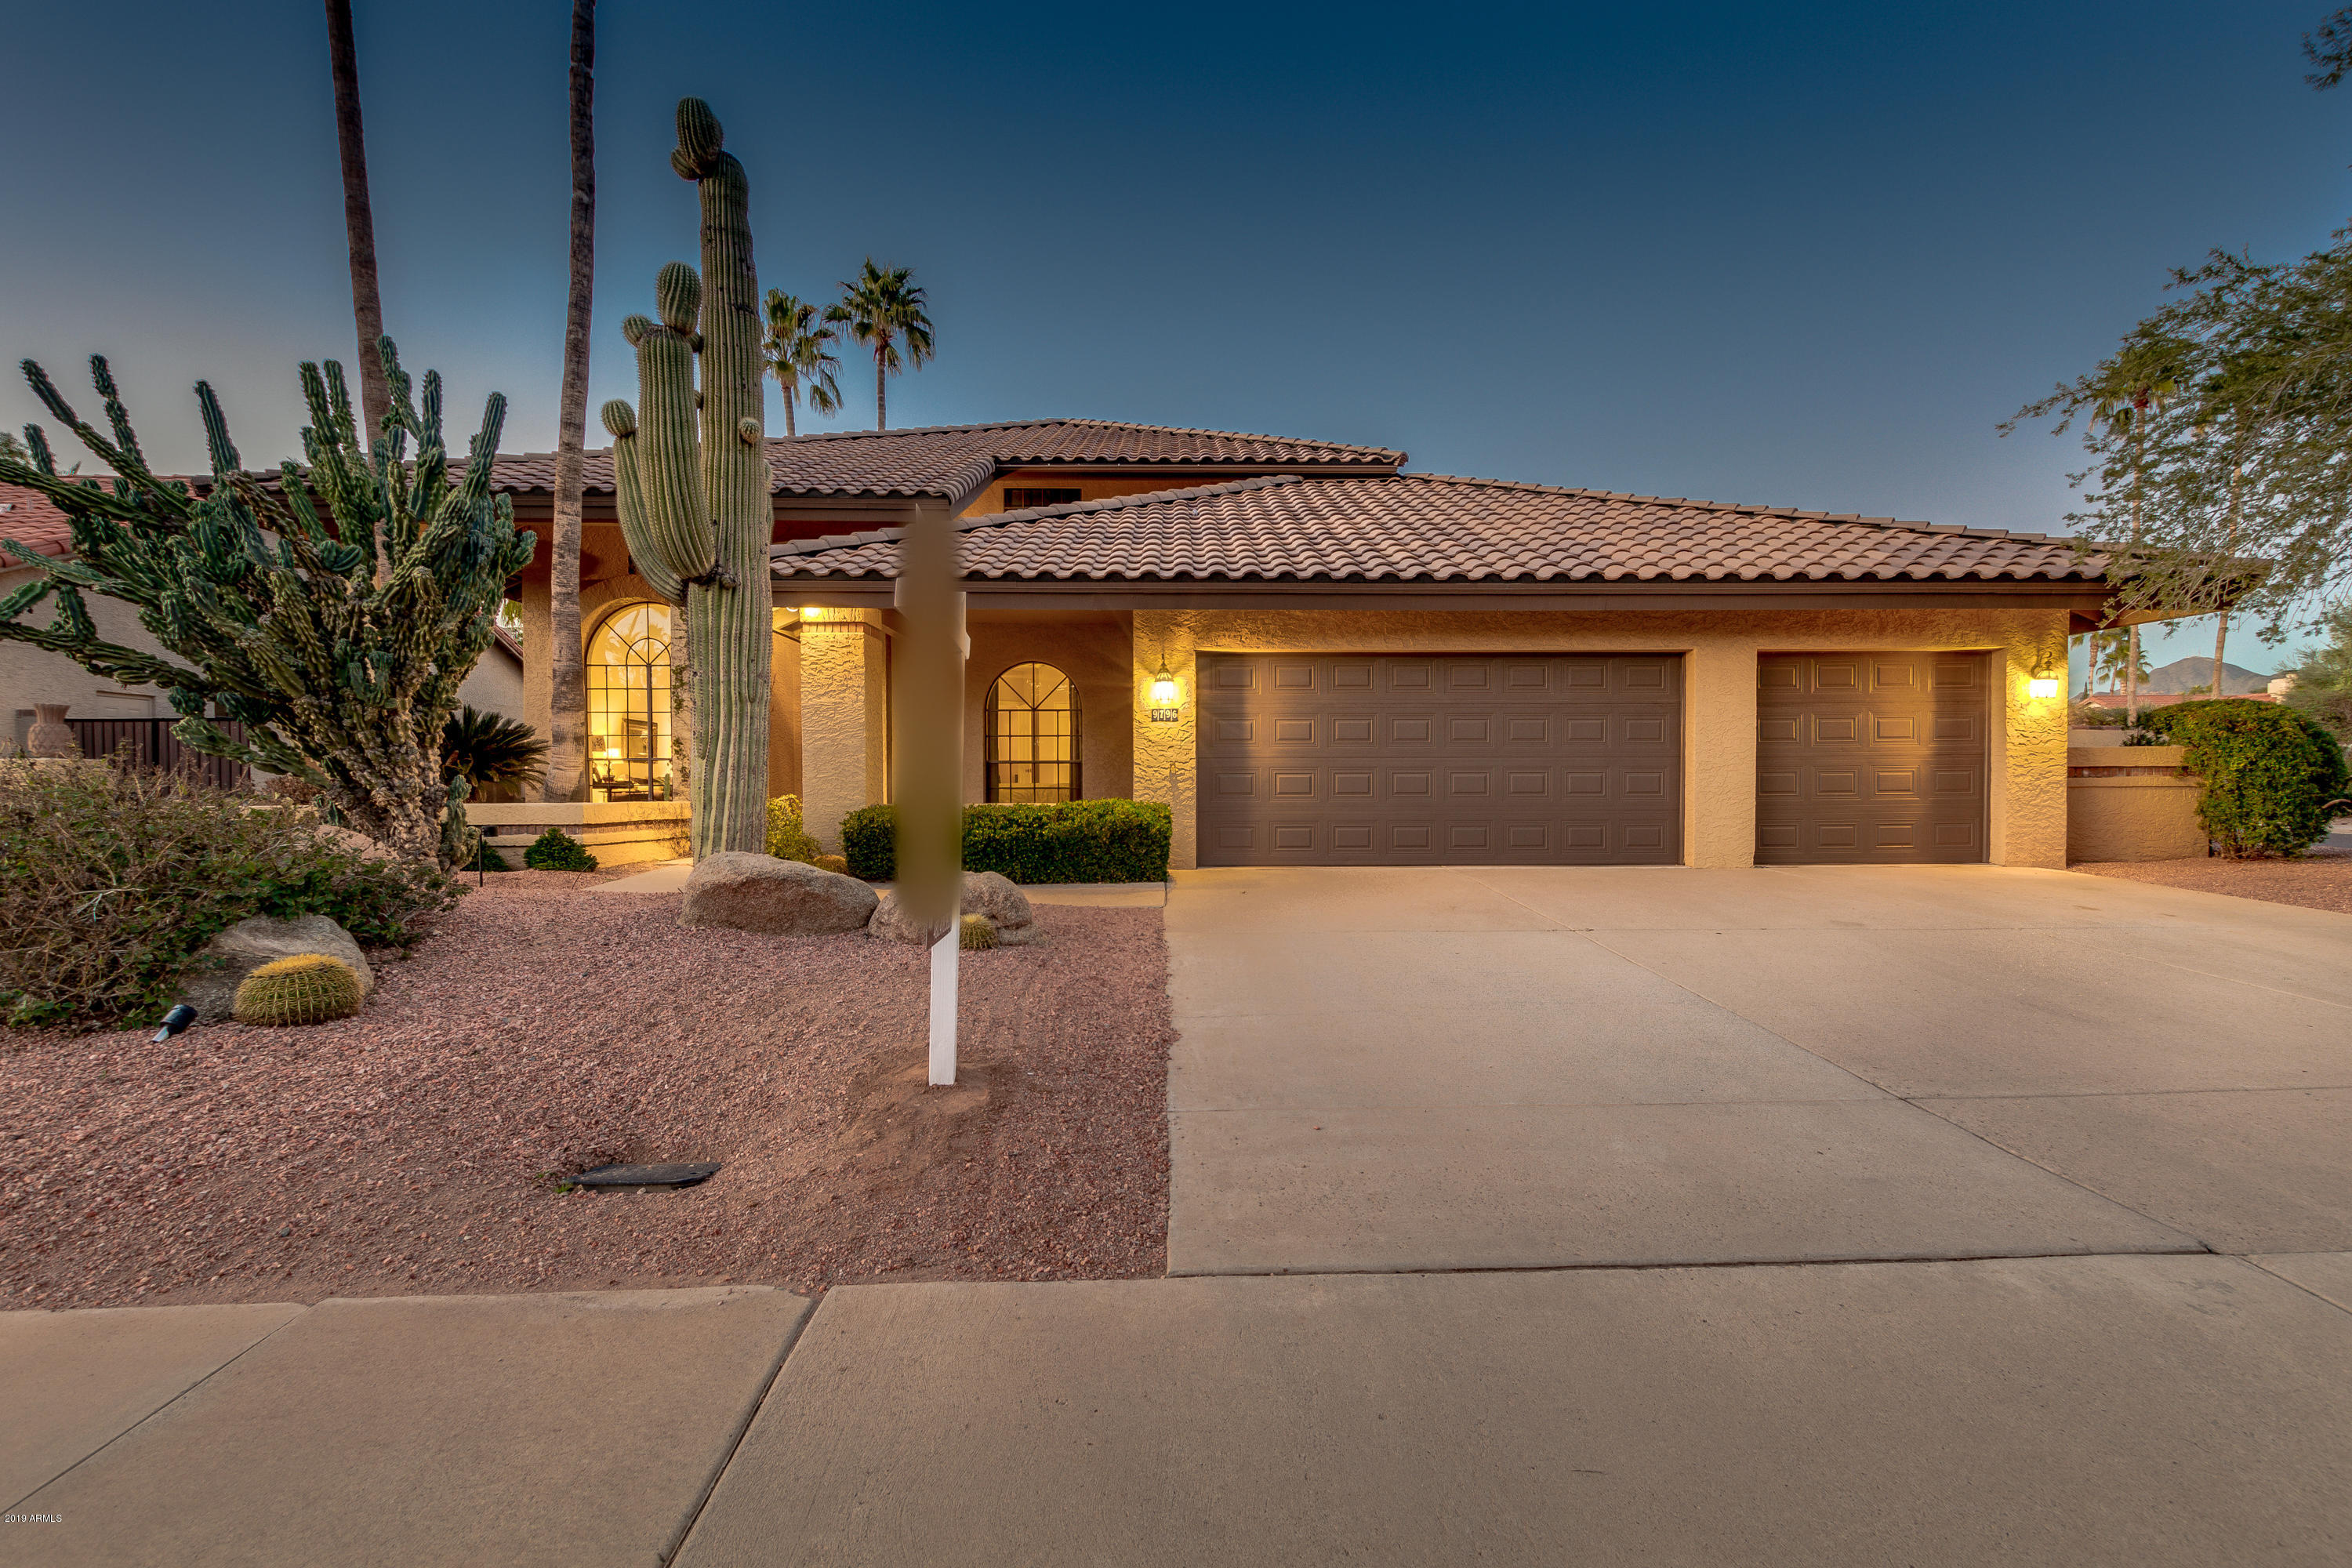 Photo of 9796 E IRONWOOD Drive, Scottsdale, AZ 85258